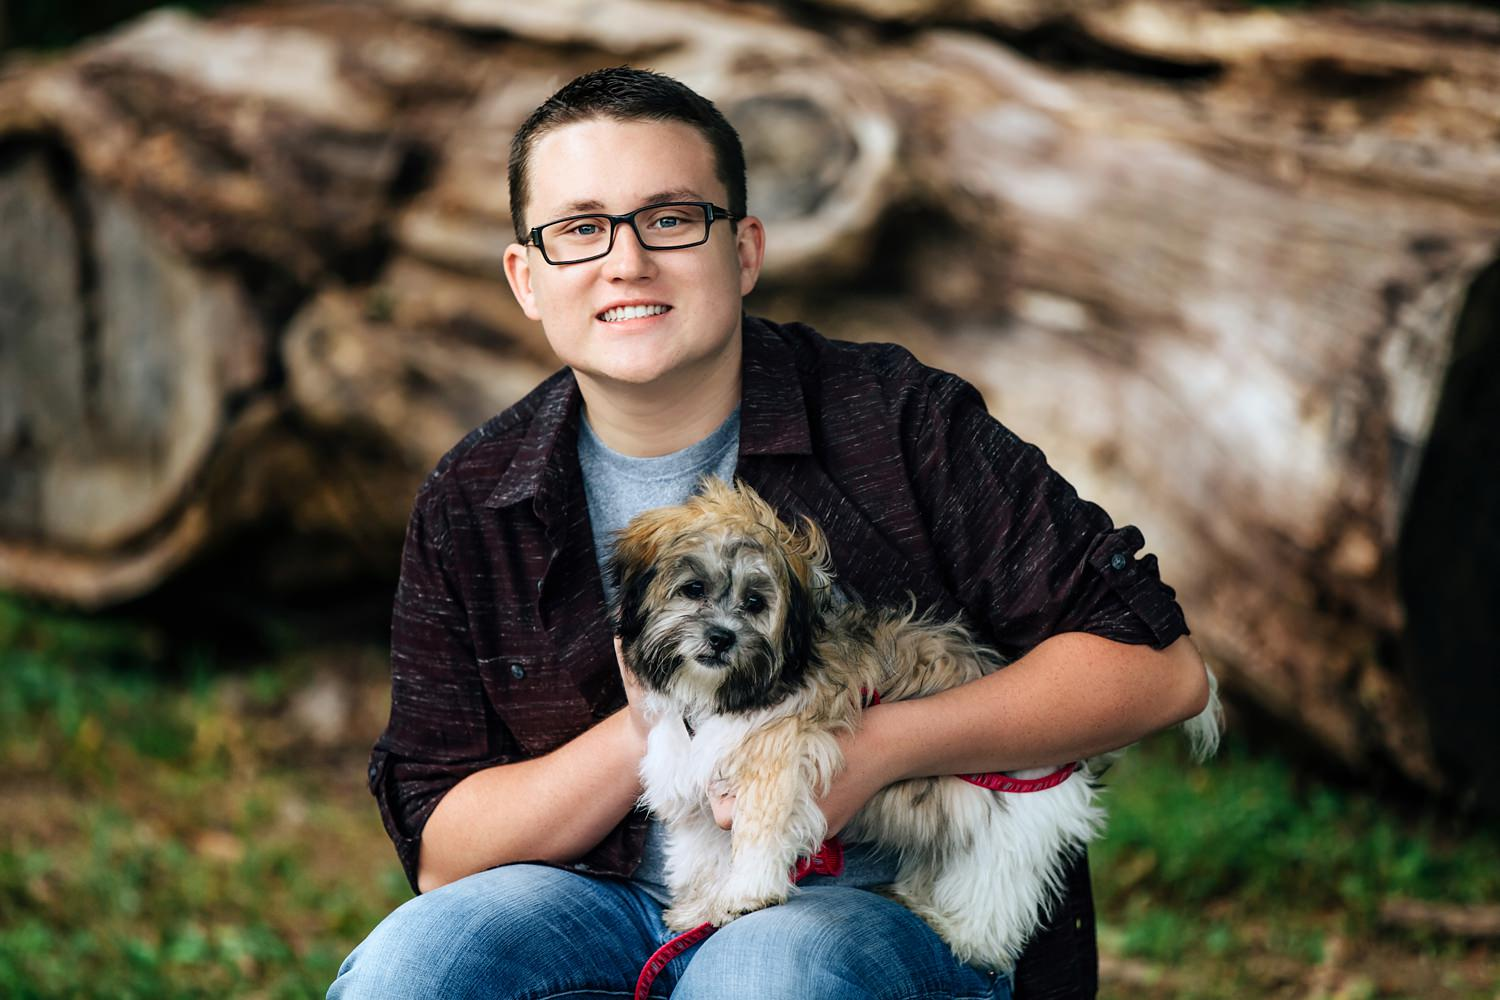 guy posing outdoors with puppy for senior portraits at deer haven park in delaware ohio